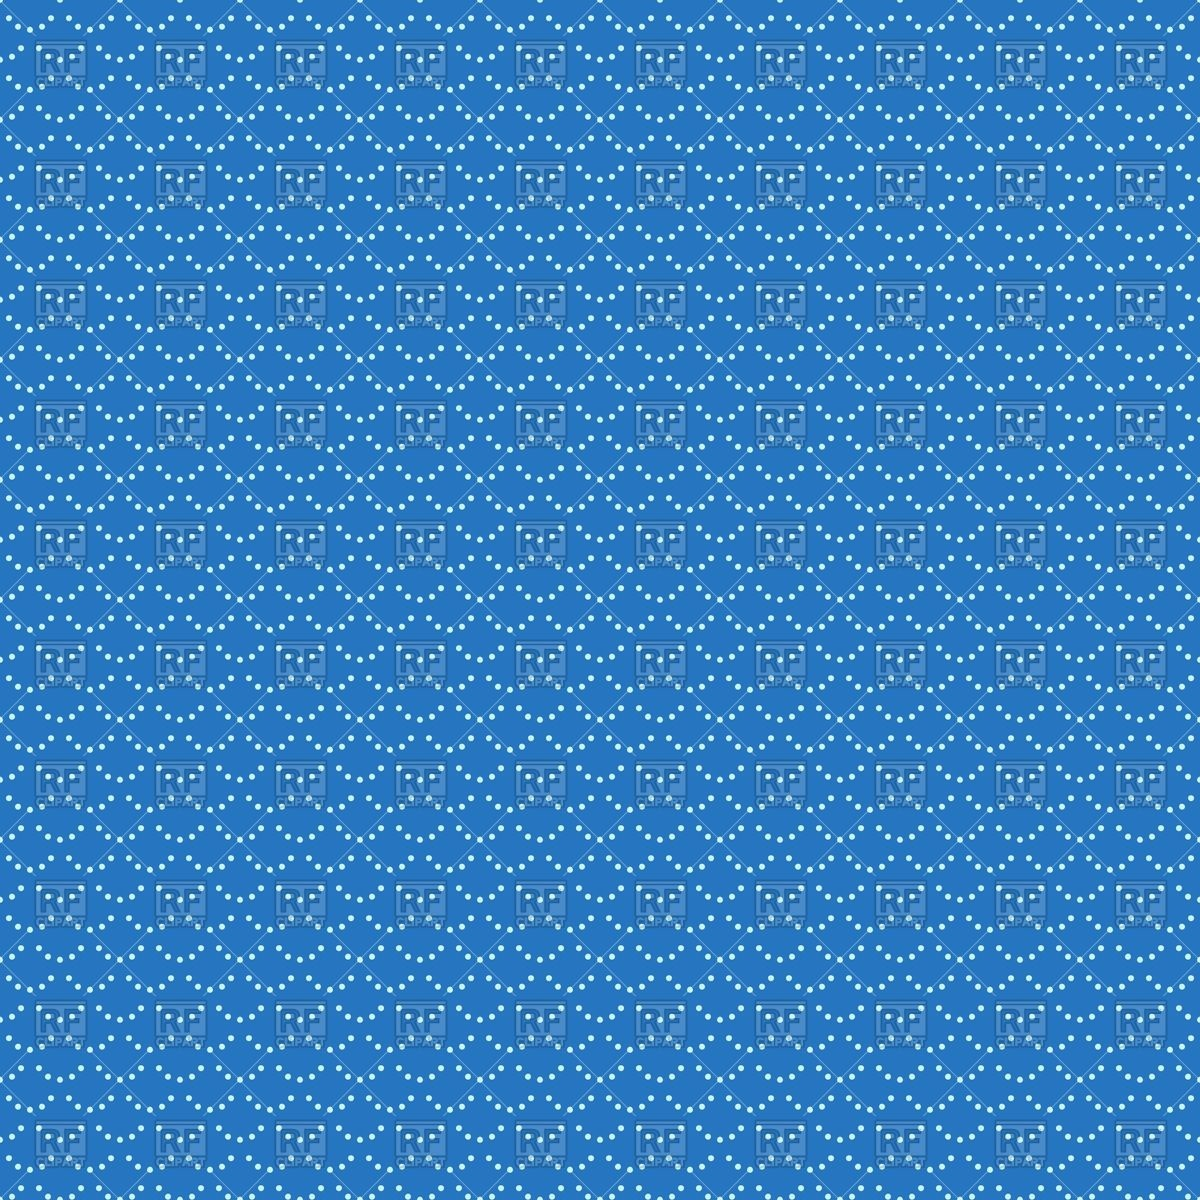 Abstract blue wallpaper with Chinese dotted pattern Vector Image.